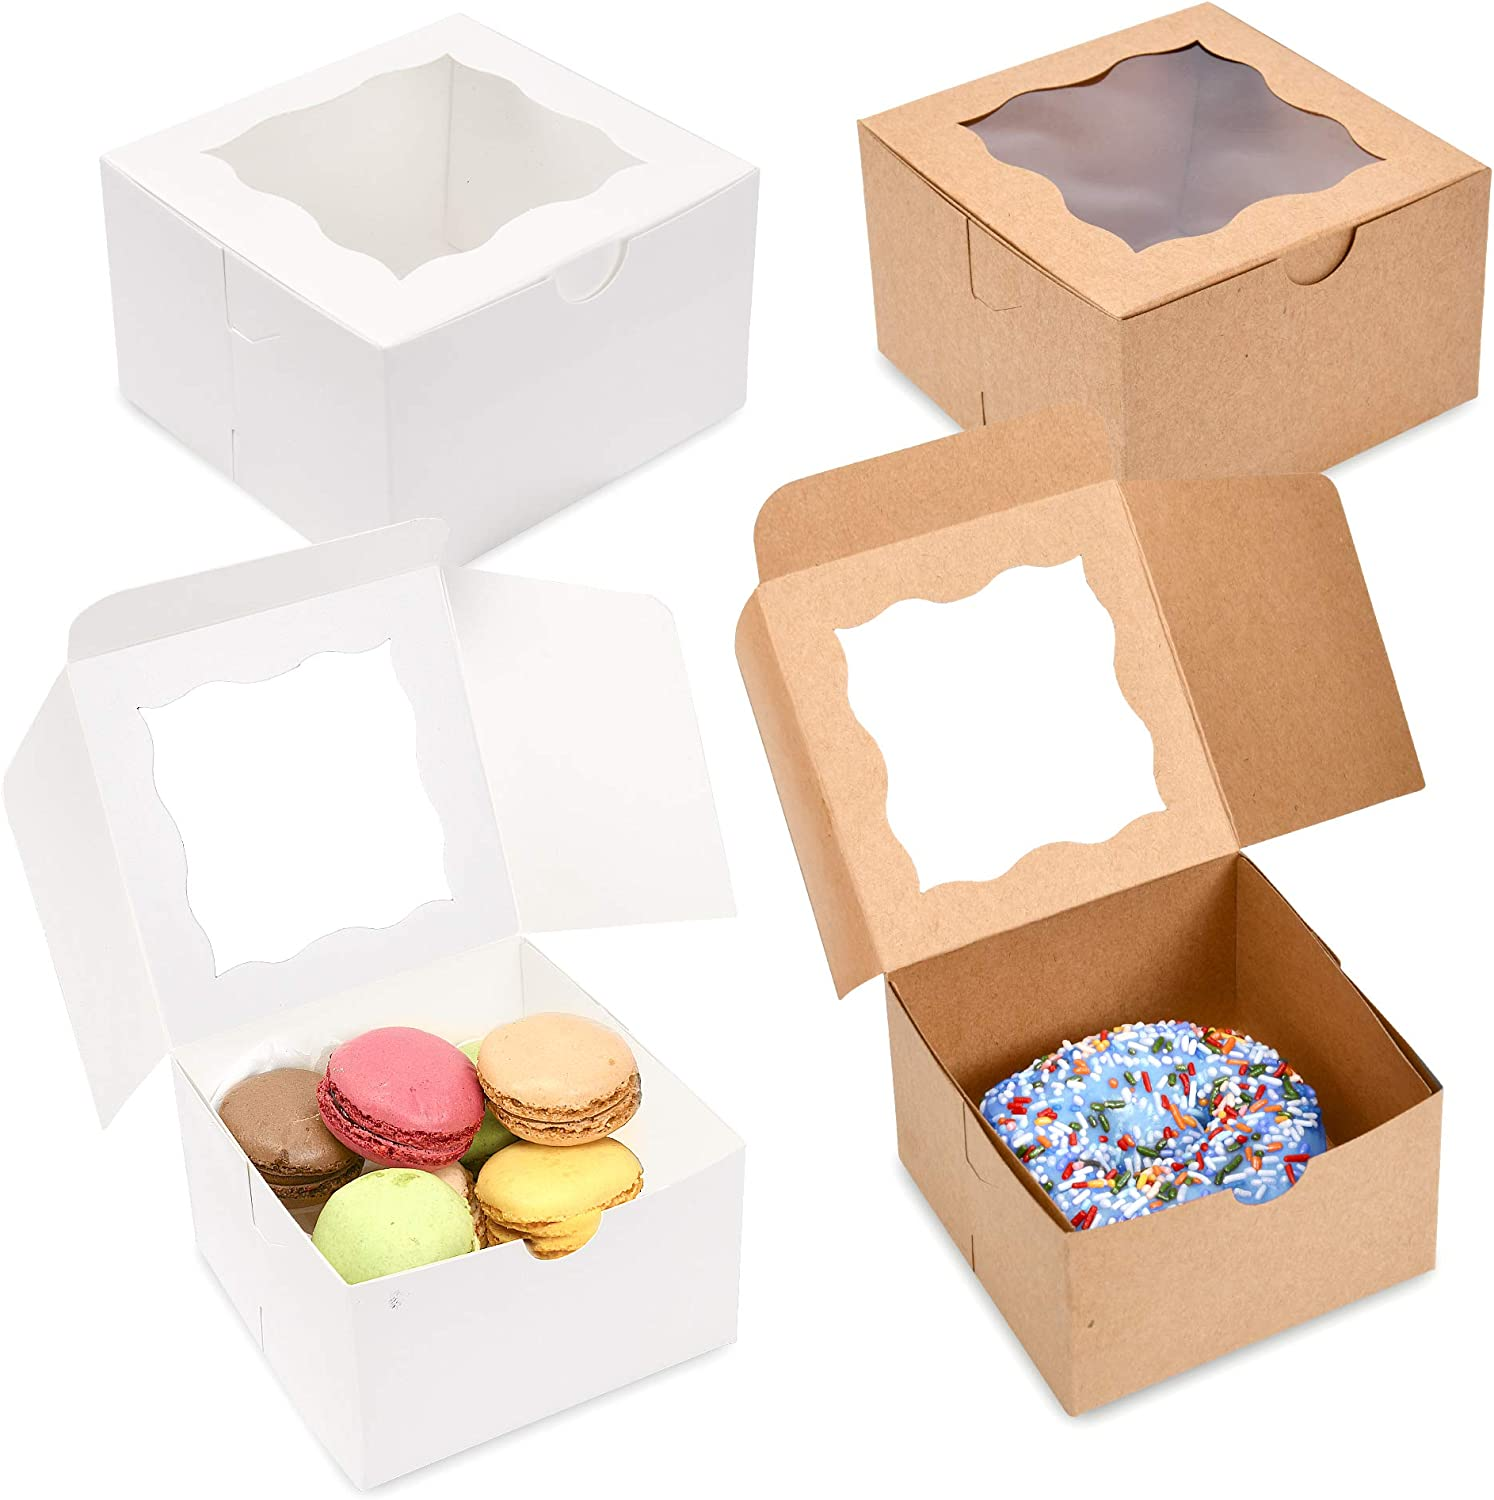 """Surf City Supplies Cake Boxes 4""""X4""""X2.5"""" 50-PACK- White Bakery Boxes with Window Easy to Assemble- Great for Cakes, Cupcakes, Donuts, Pies, Cookies, Pastries, Cheesecake, Candy, & Brownies"""